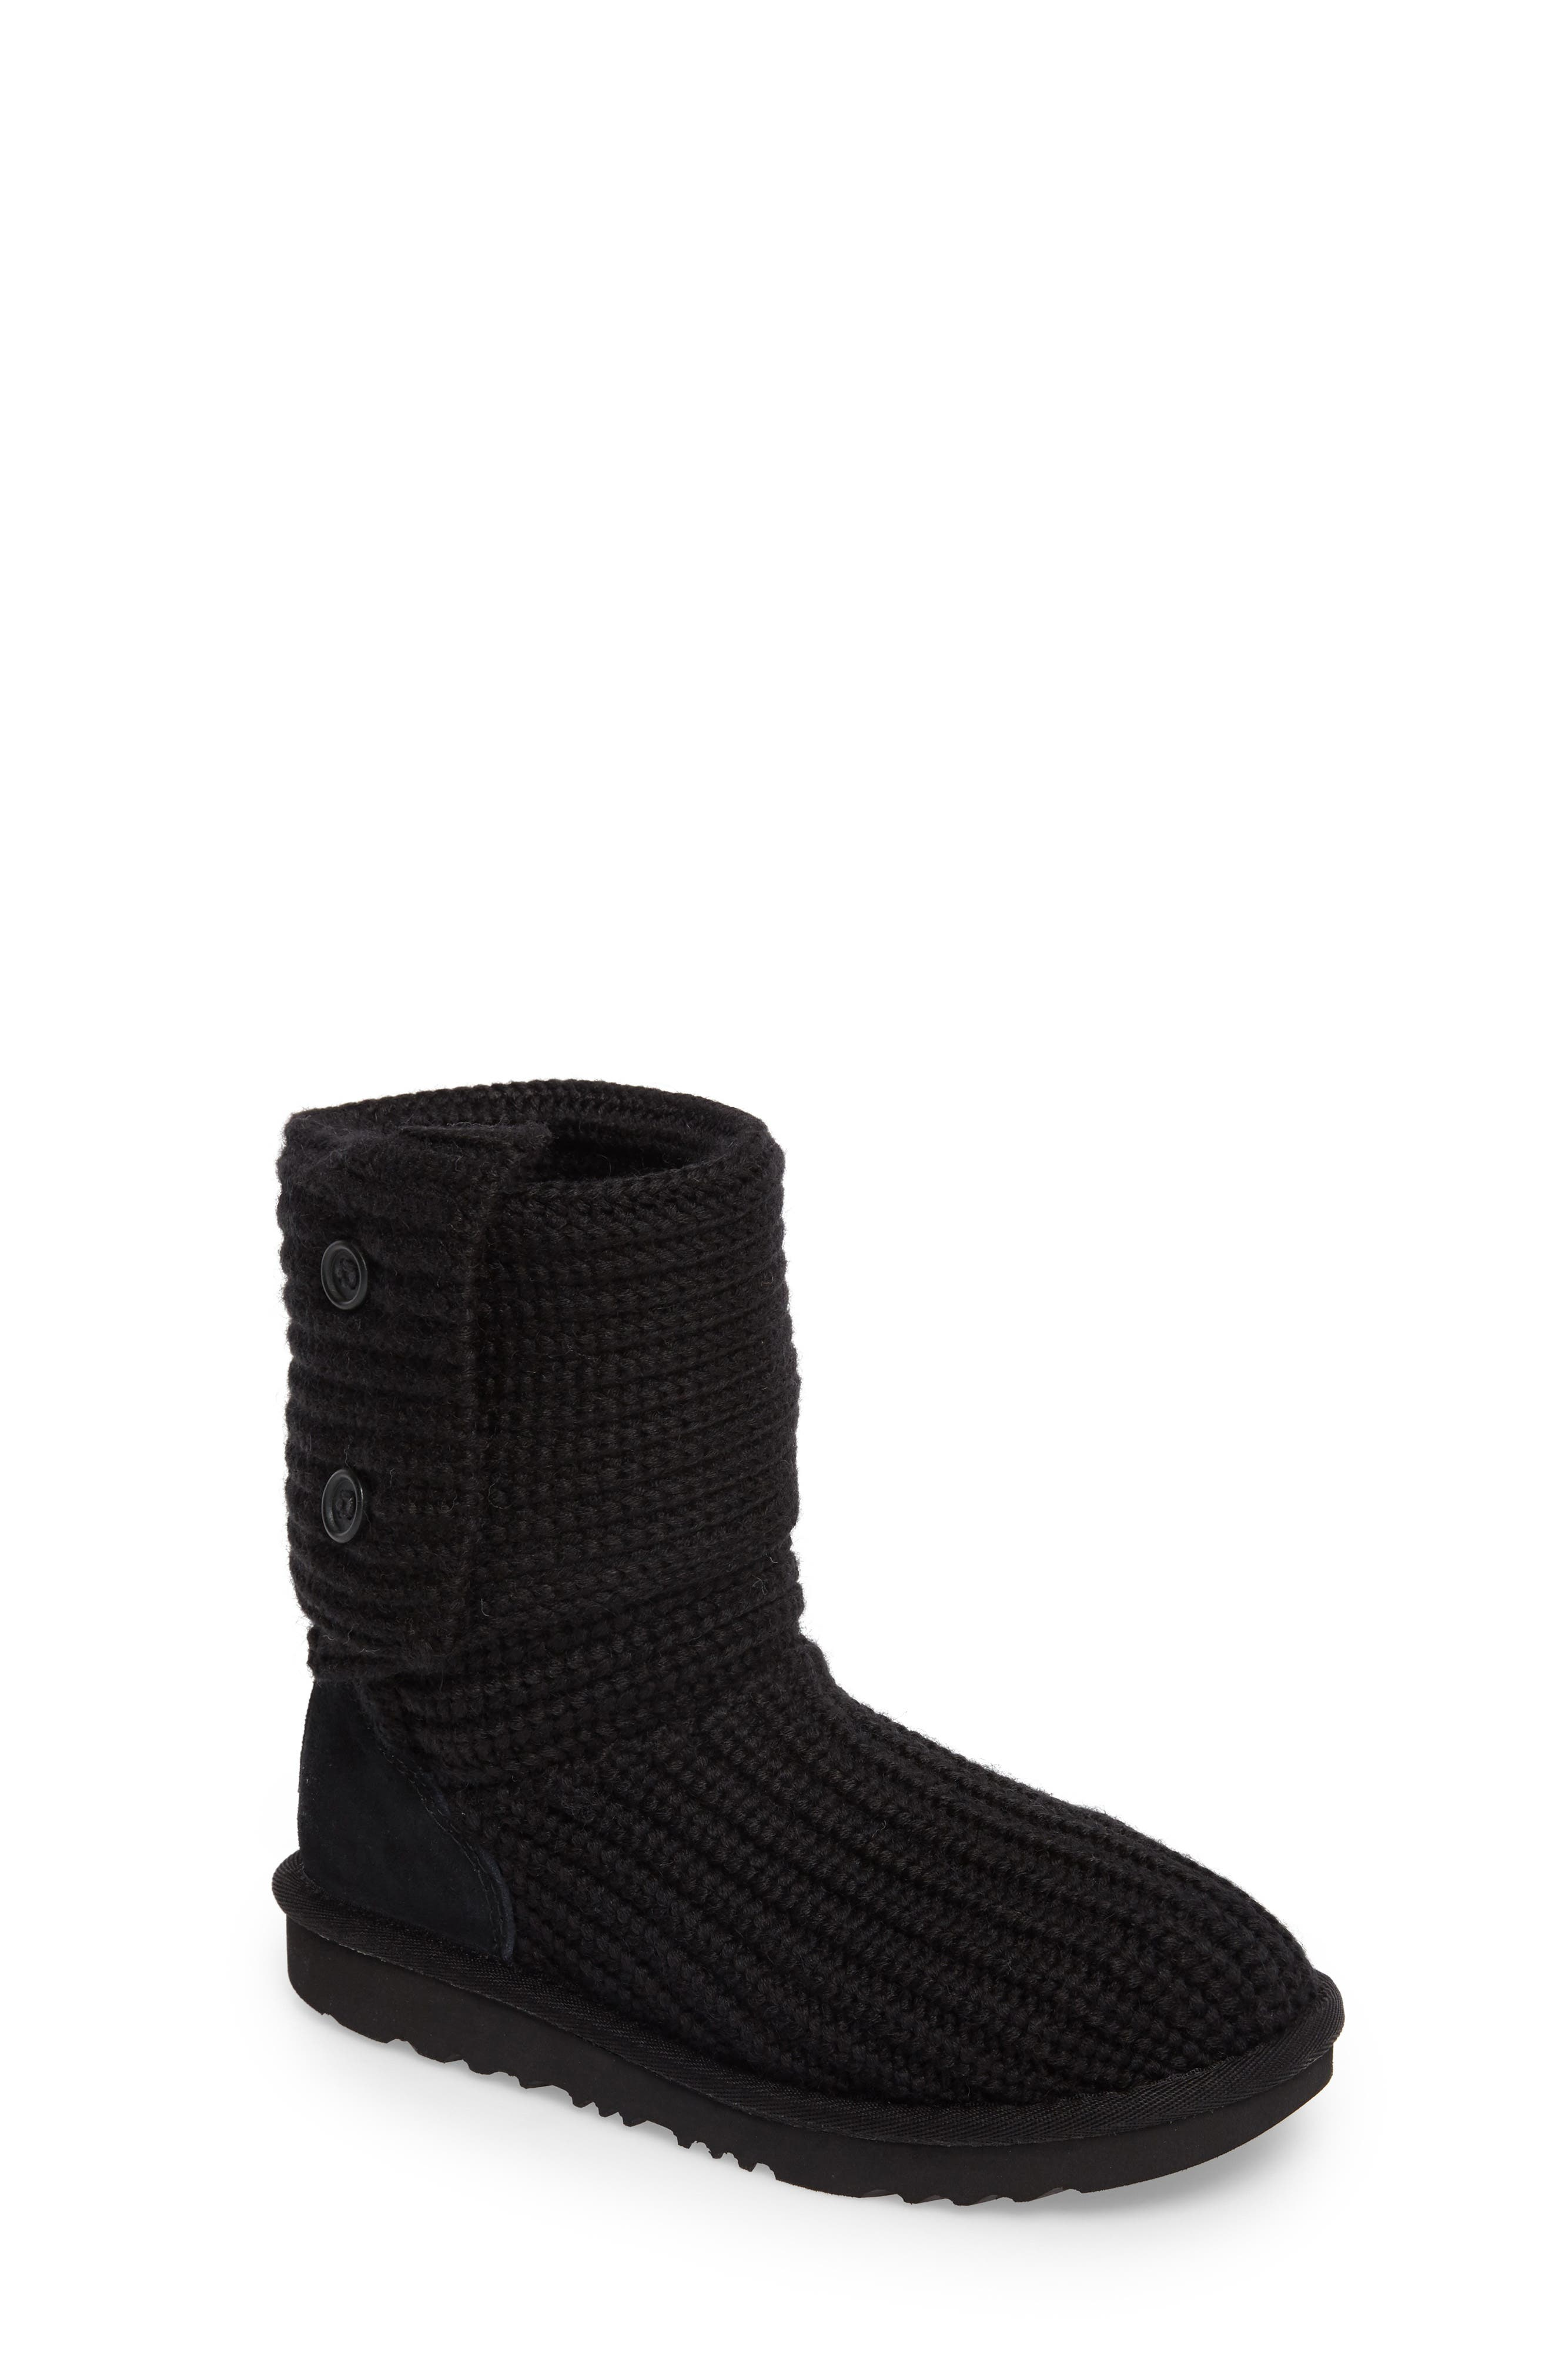 Cardy II Cableknit Bootie,                             Main thumbnail 1, color,                             Black